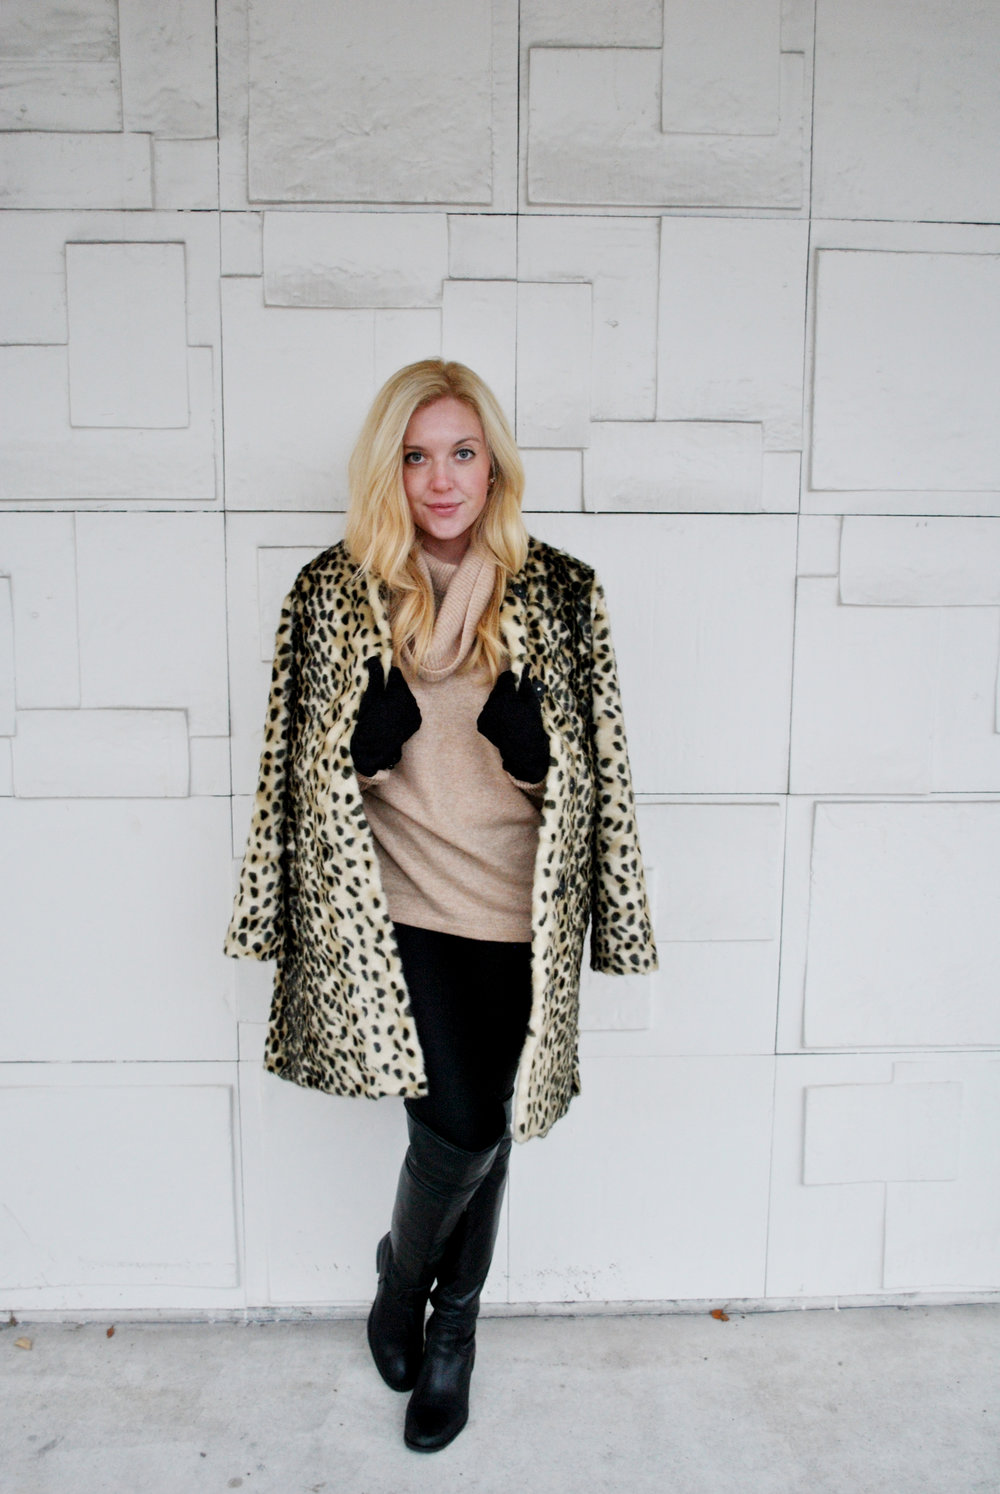 thoughtfulwish | fashion blogger, camel and leopard, camel outfit, the street chestnut hill, wings, angel wings, leopard coat, blonde blogger, preppy, luxe style, boston, meredith wish